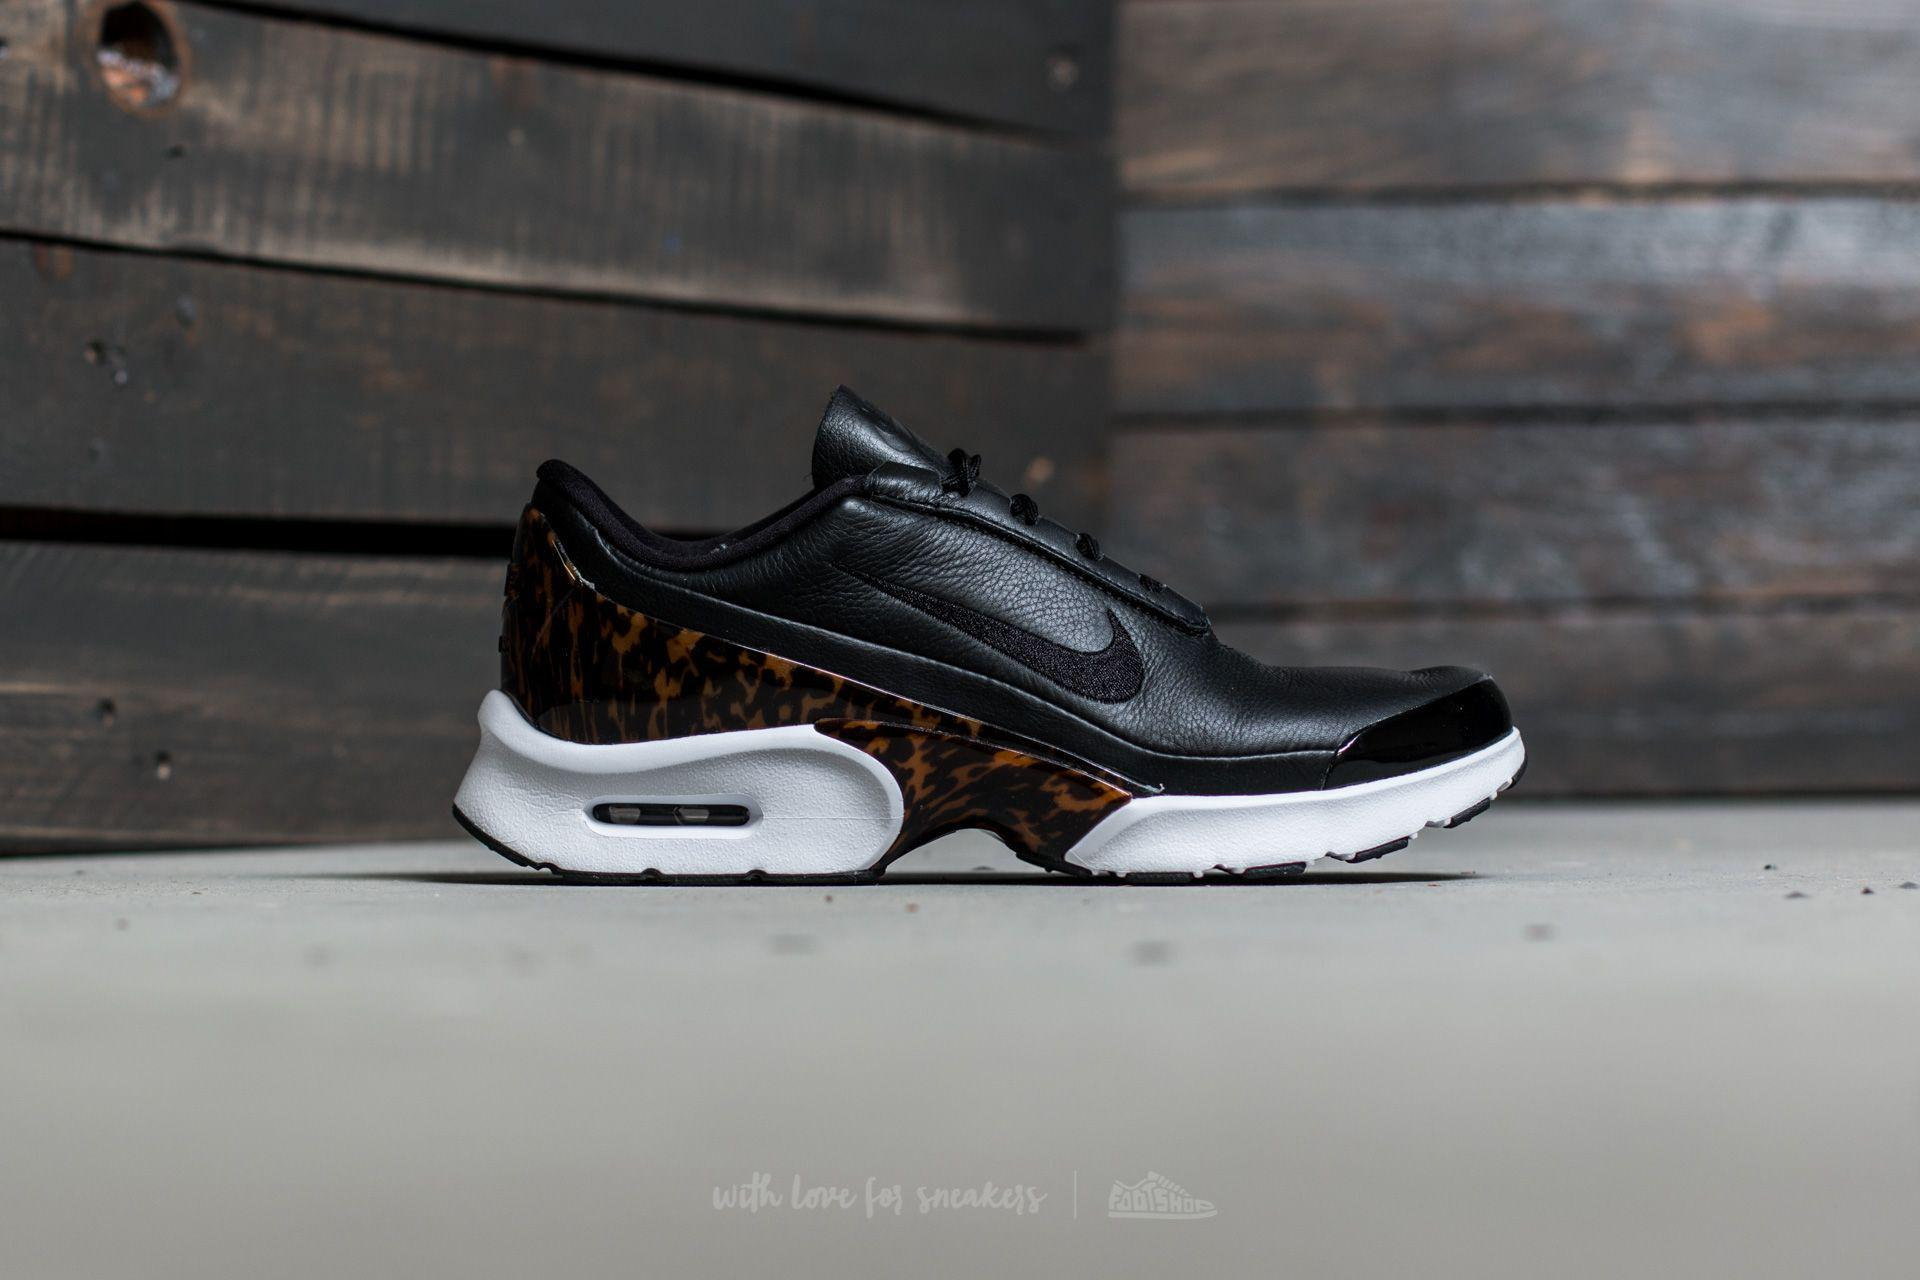 c8d28c0a1e Gallery. Previously sold at: Footshop · Women's Nike Air Max